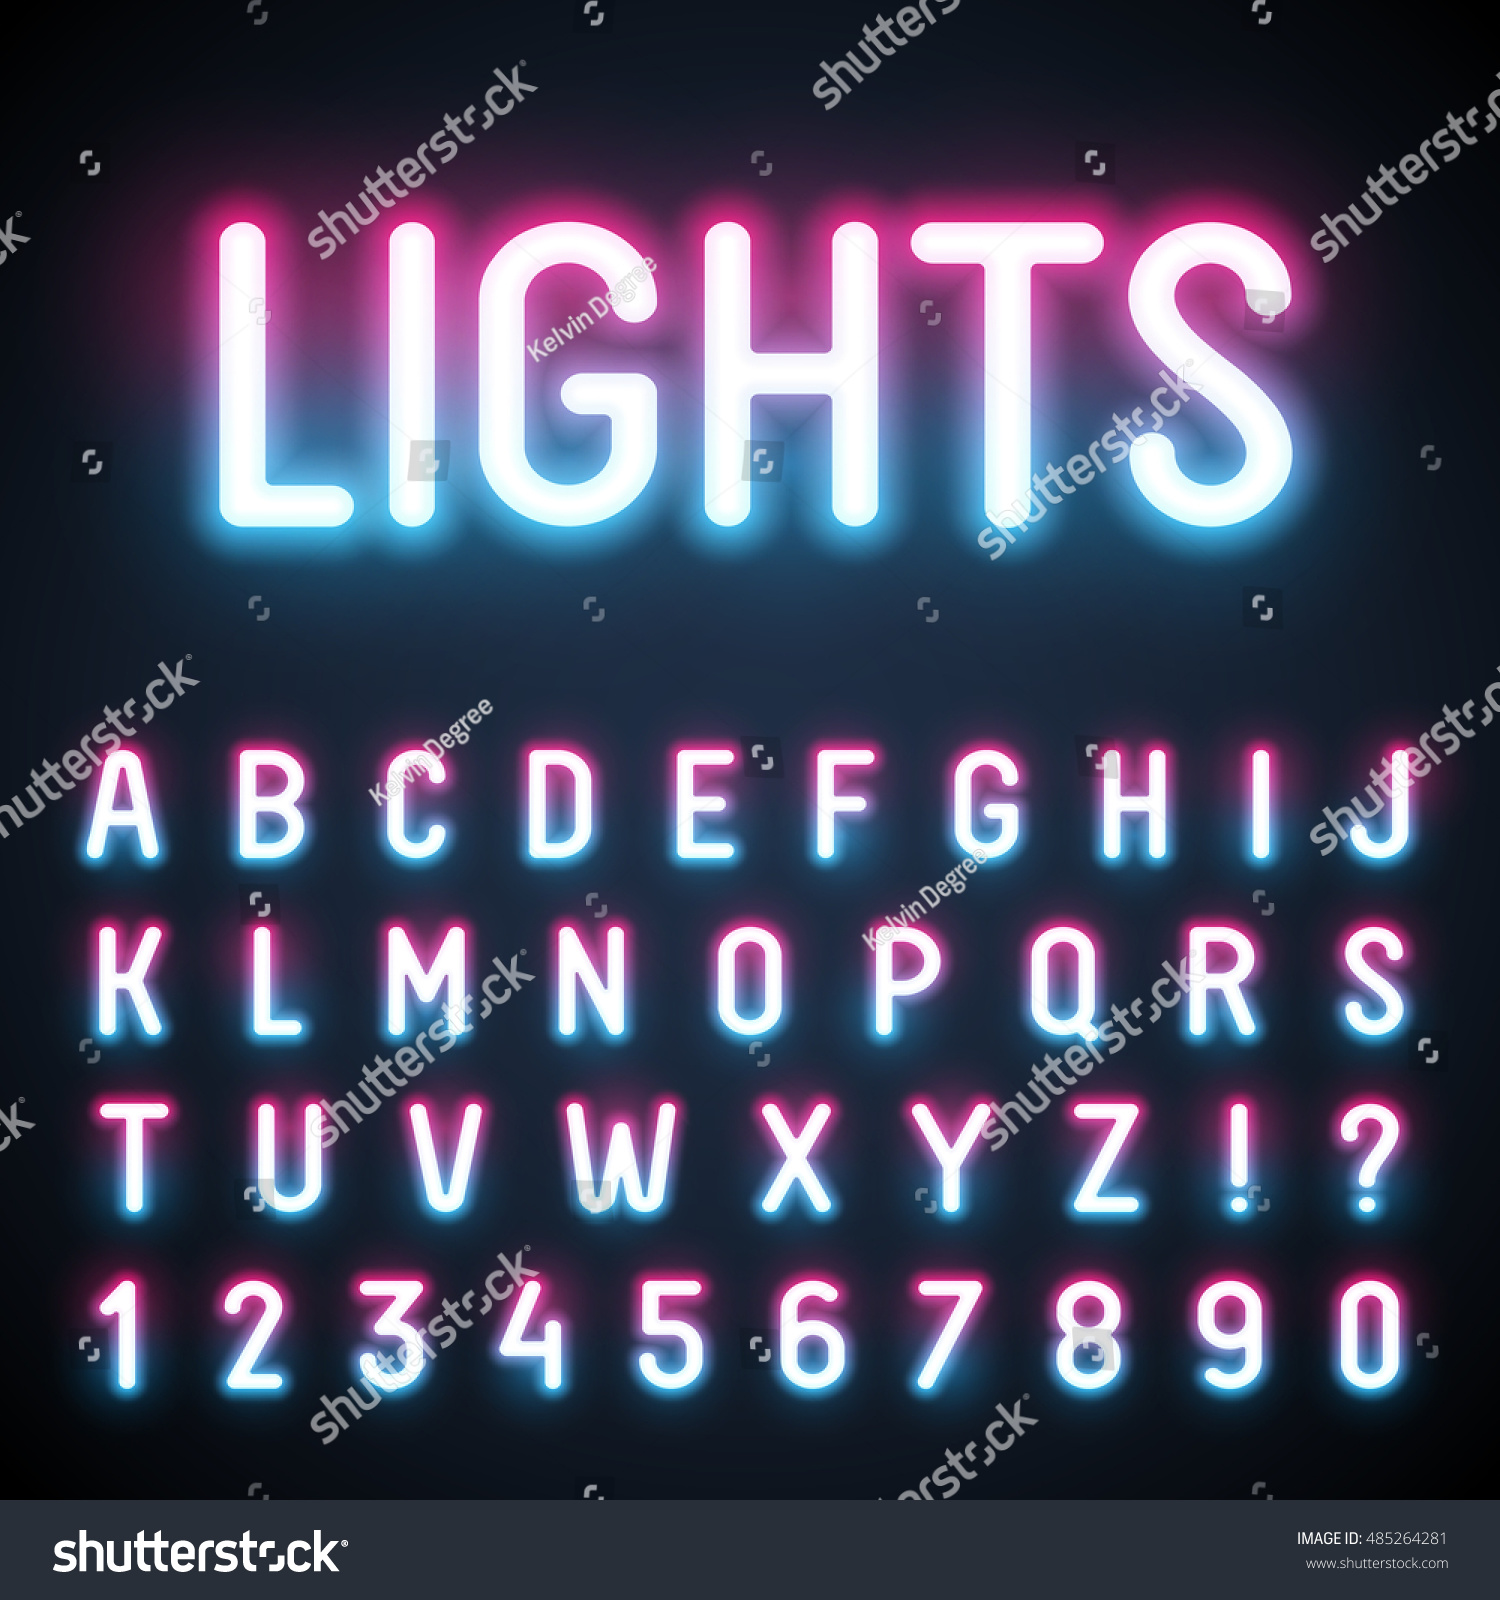 DohaLQb in addition Design additionally Maximize Book Sales With These Book Cover Improvements together with Pennyroyal Academy And The Princess In Black as well Glowing Neon Tube Font Retro Text 485264281. on wave text character